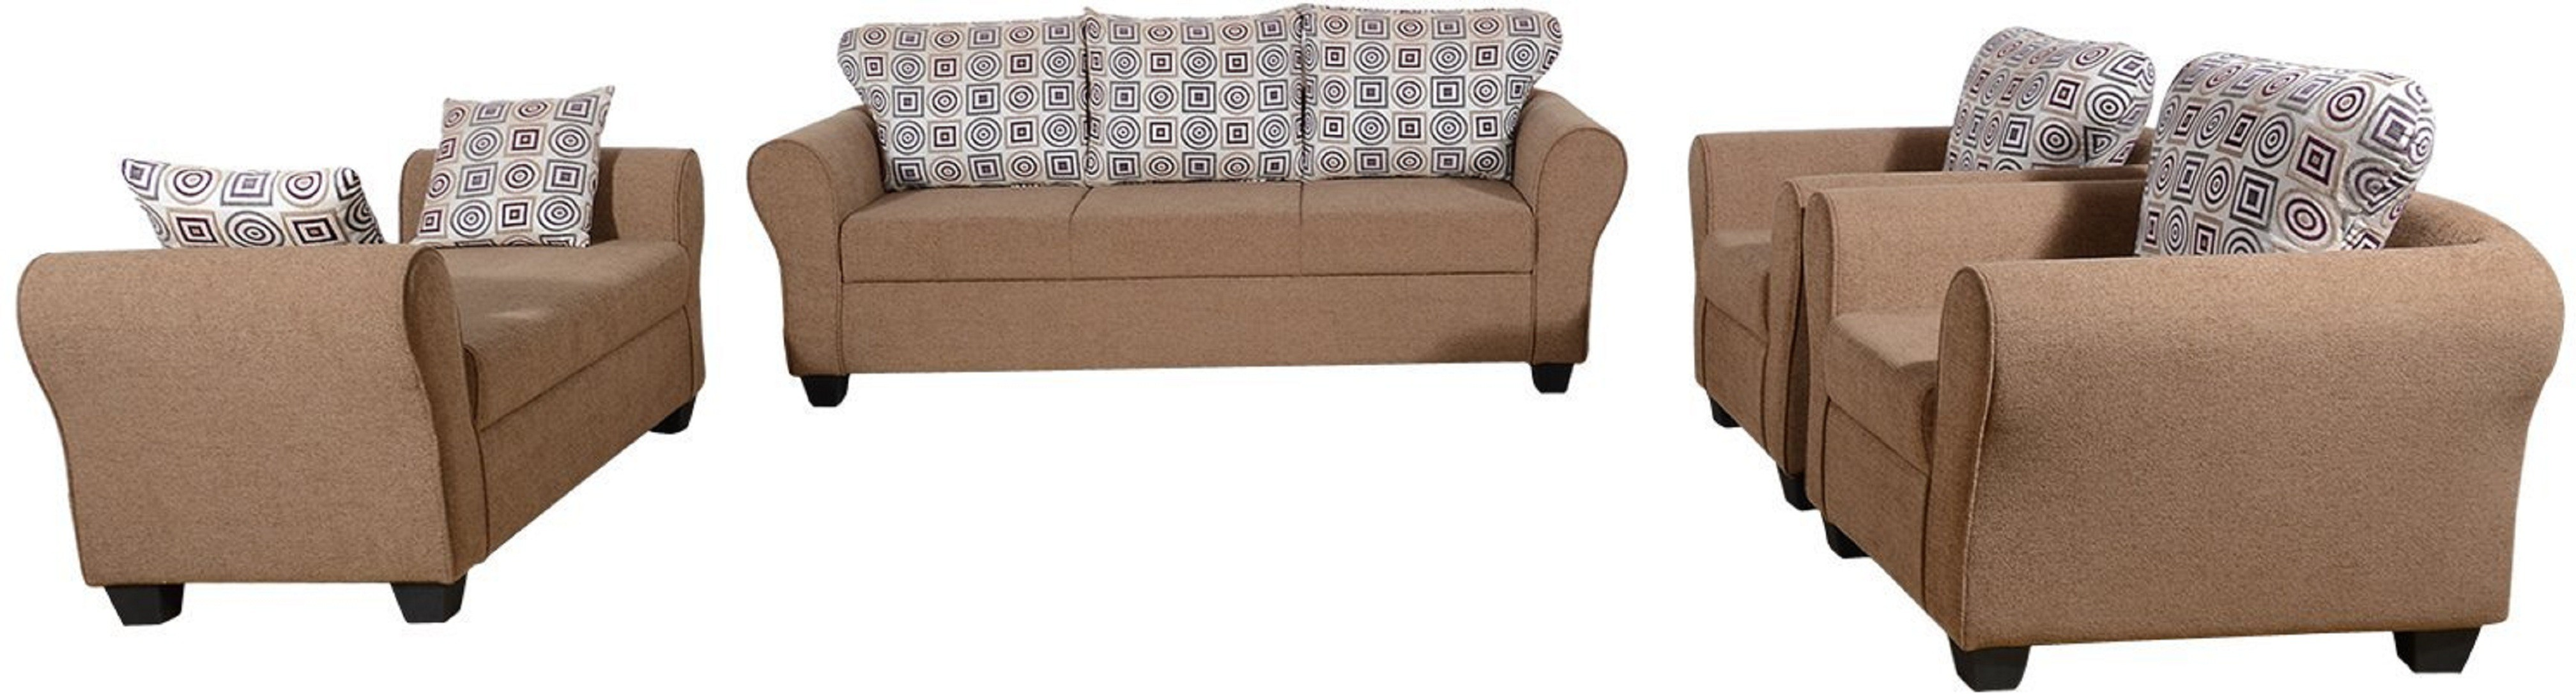 View RAWAT Nano 1 Solid Wood 3 + 2 + 1 + 1 Multicolour Sofa Set(Configuration - L) Furniture (RAWAT)